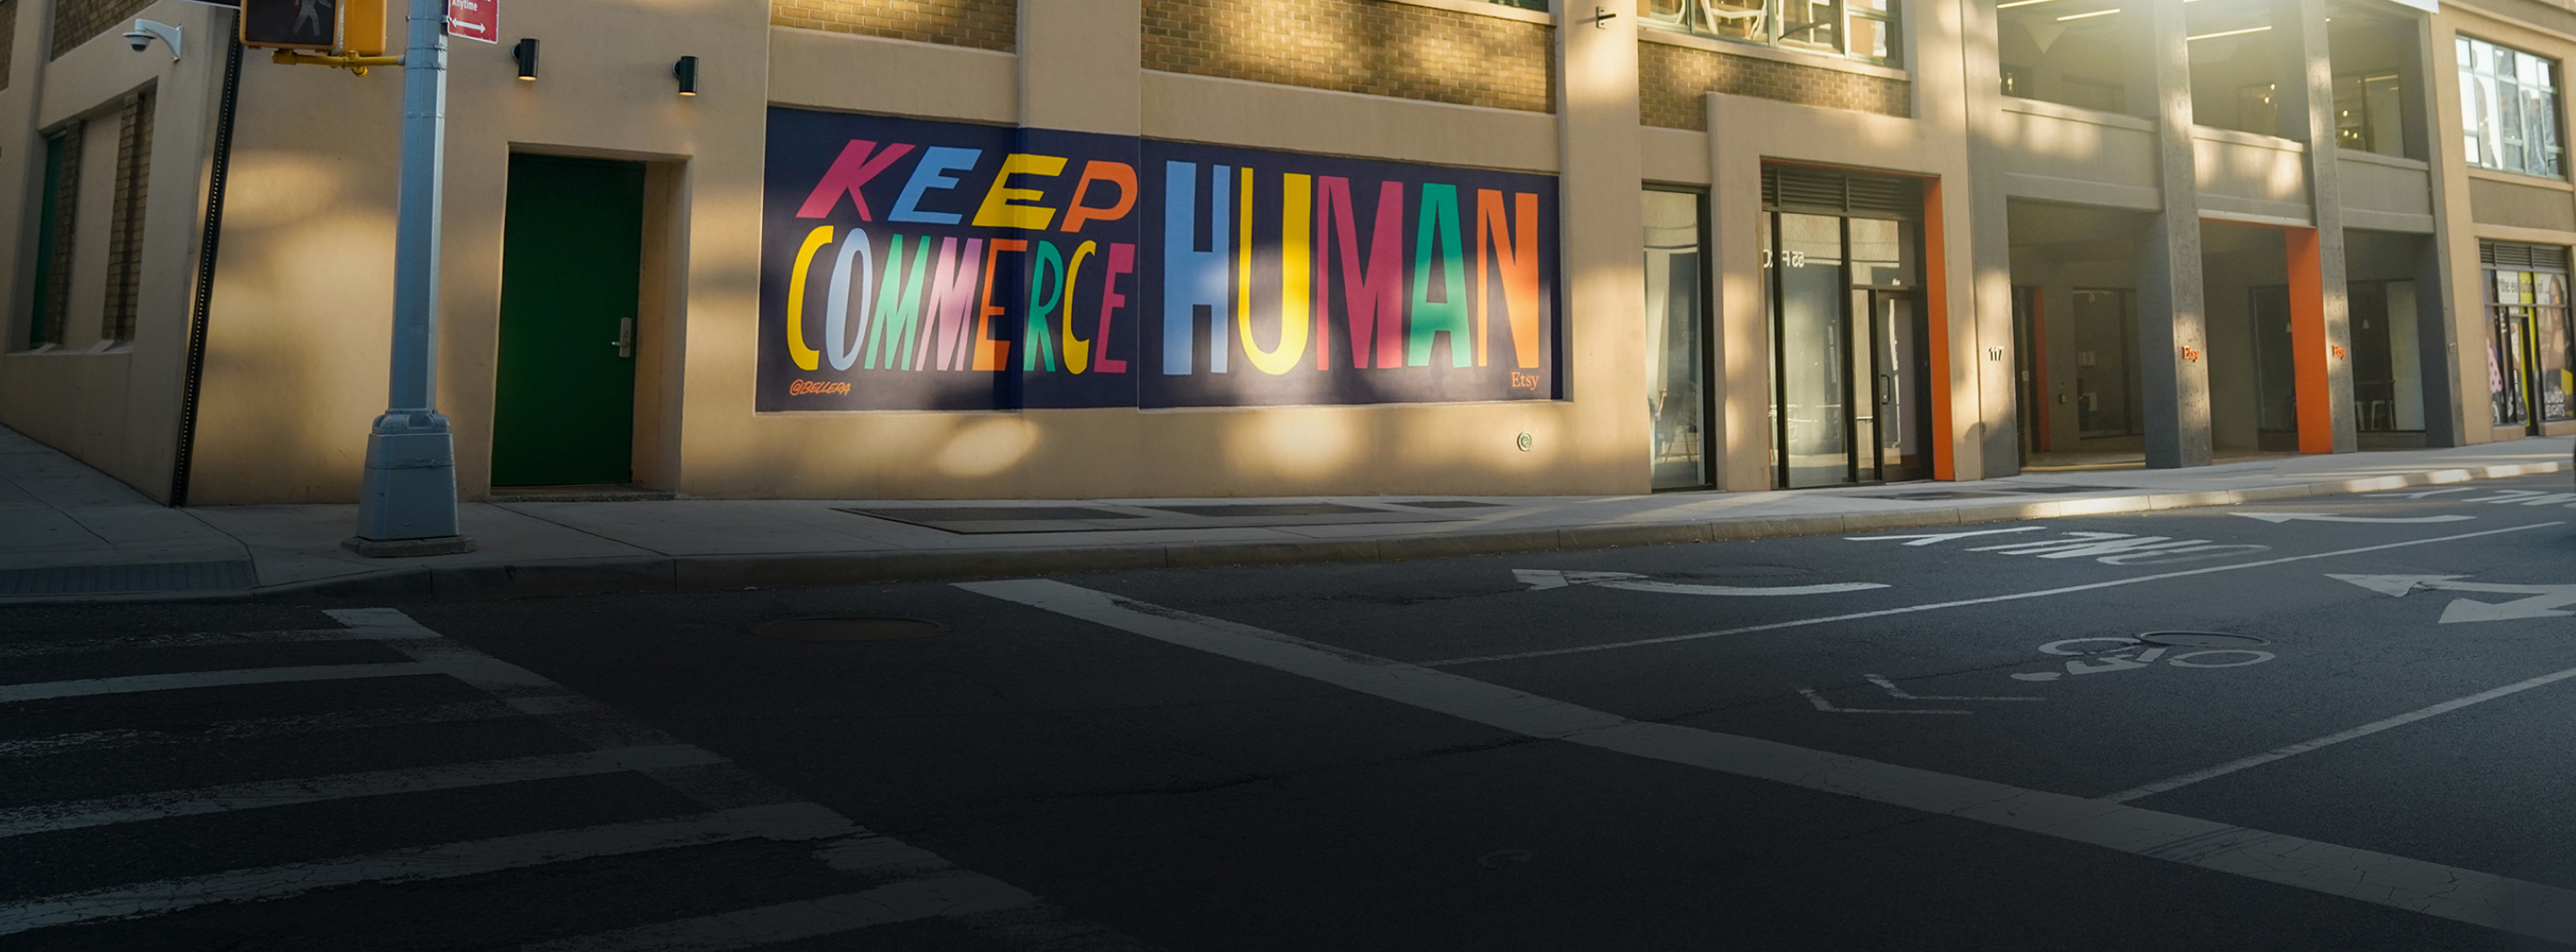 Mural at Etsy HQ proclaiming our mission to Keep Commerce Human